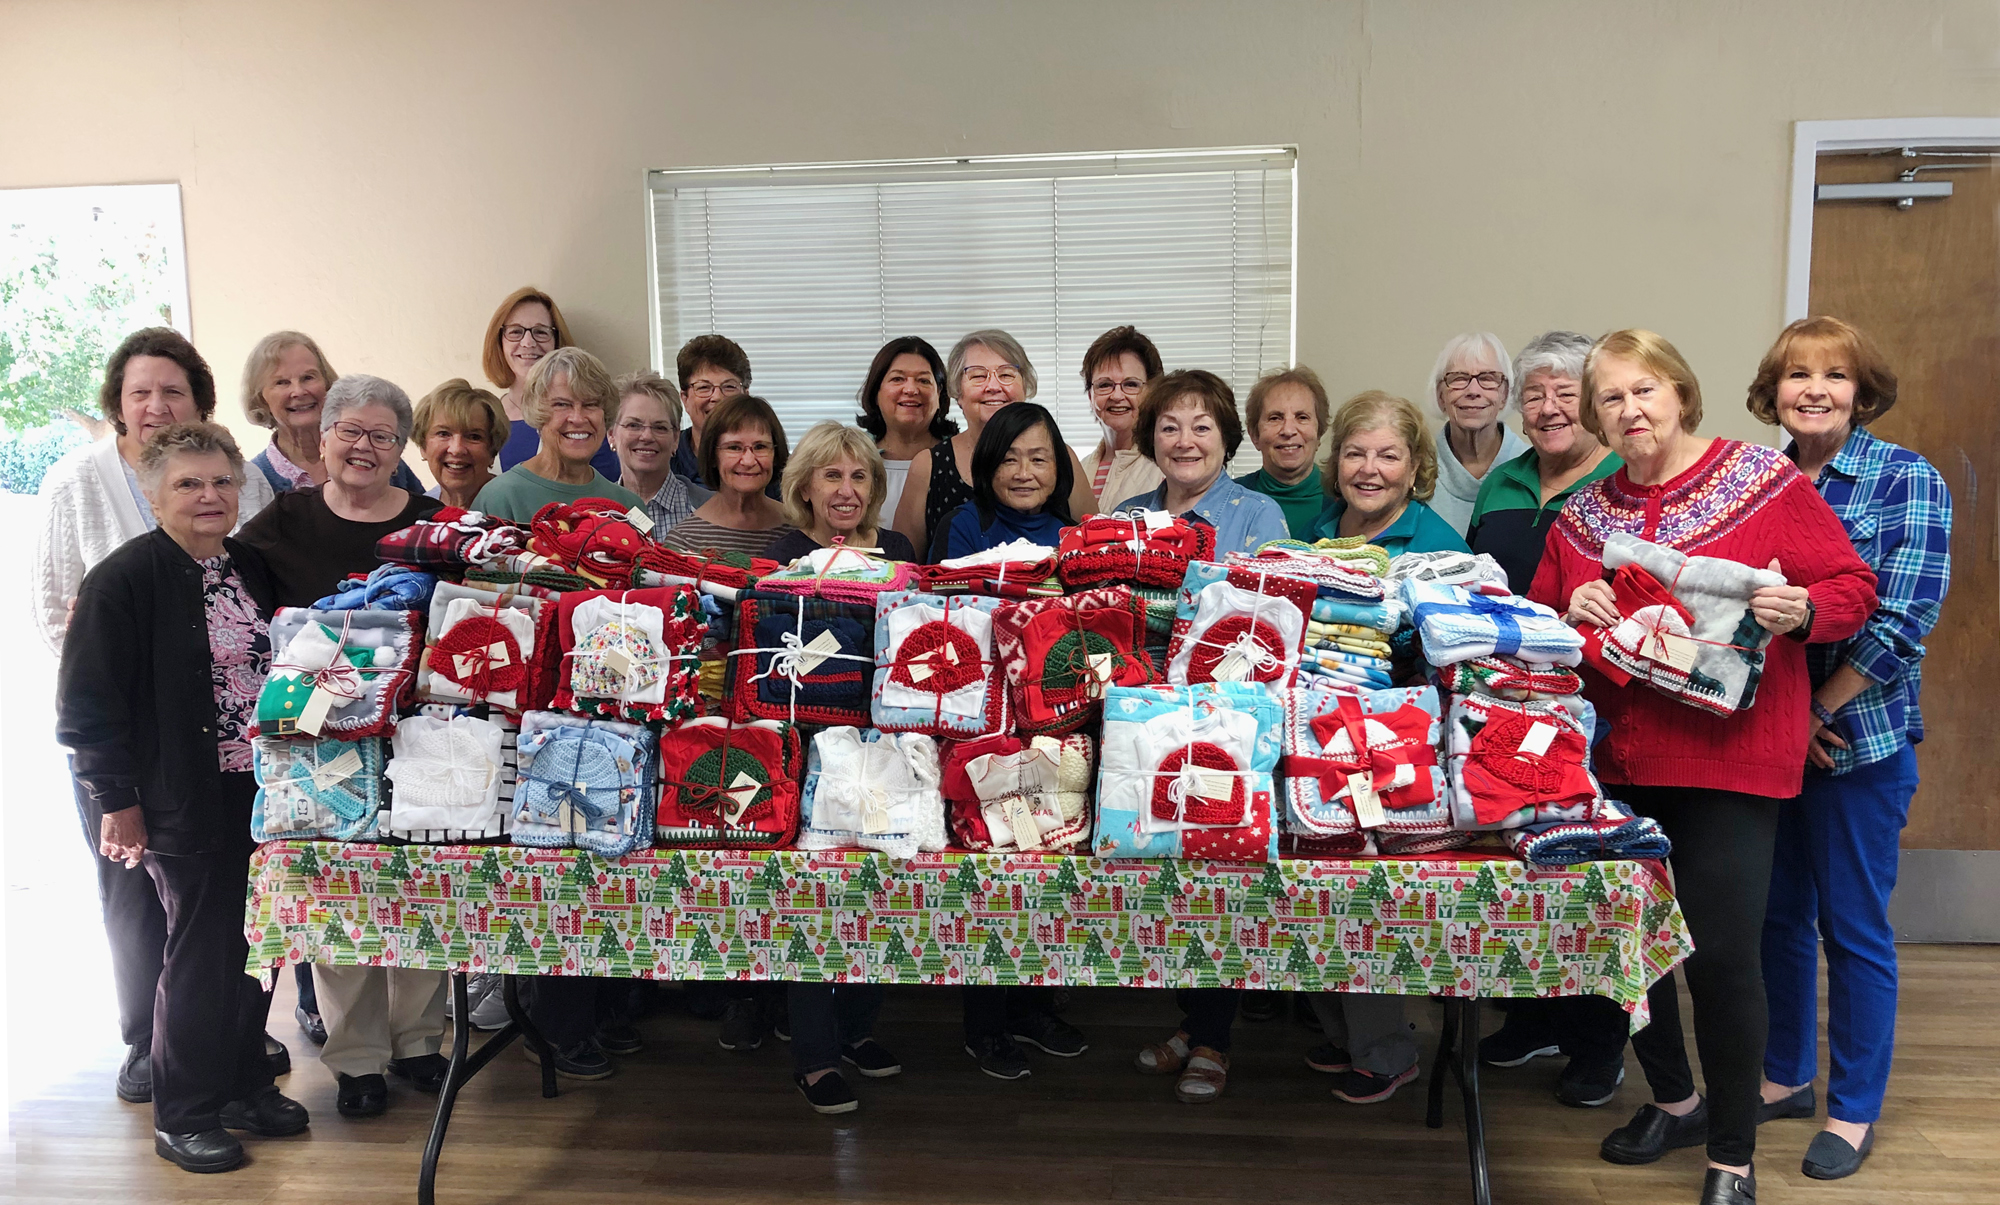 Caring Hands - volunteers with holiday layettes